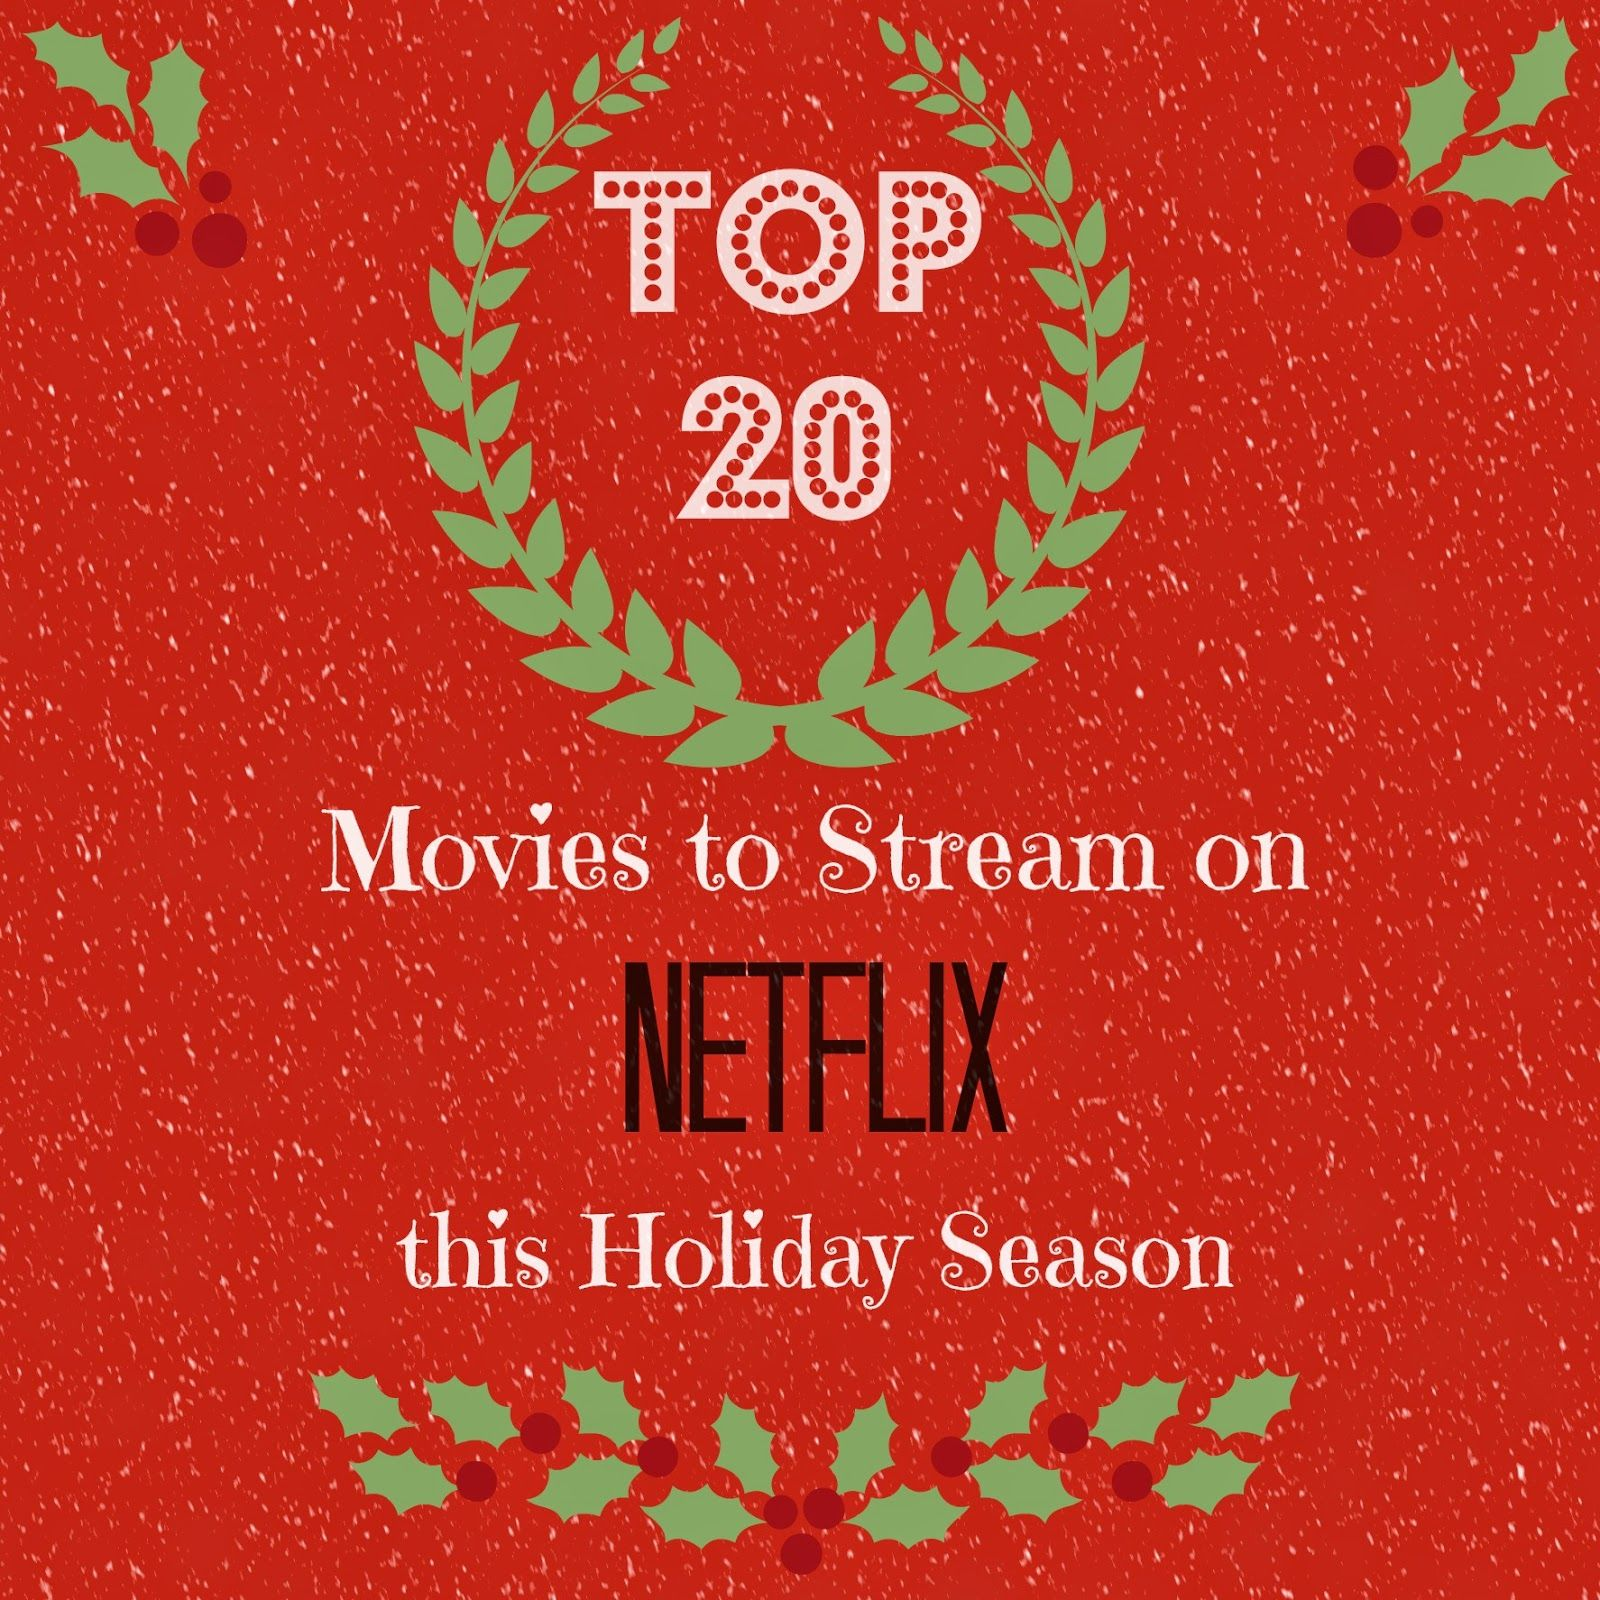 Whimsy & Wise Top 20 Movies To Stream on Netflix This